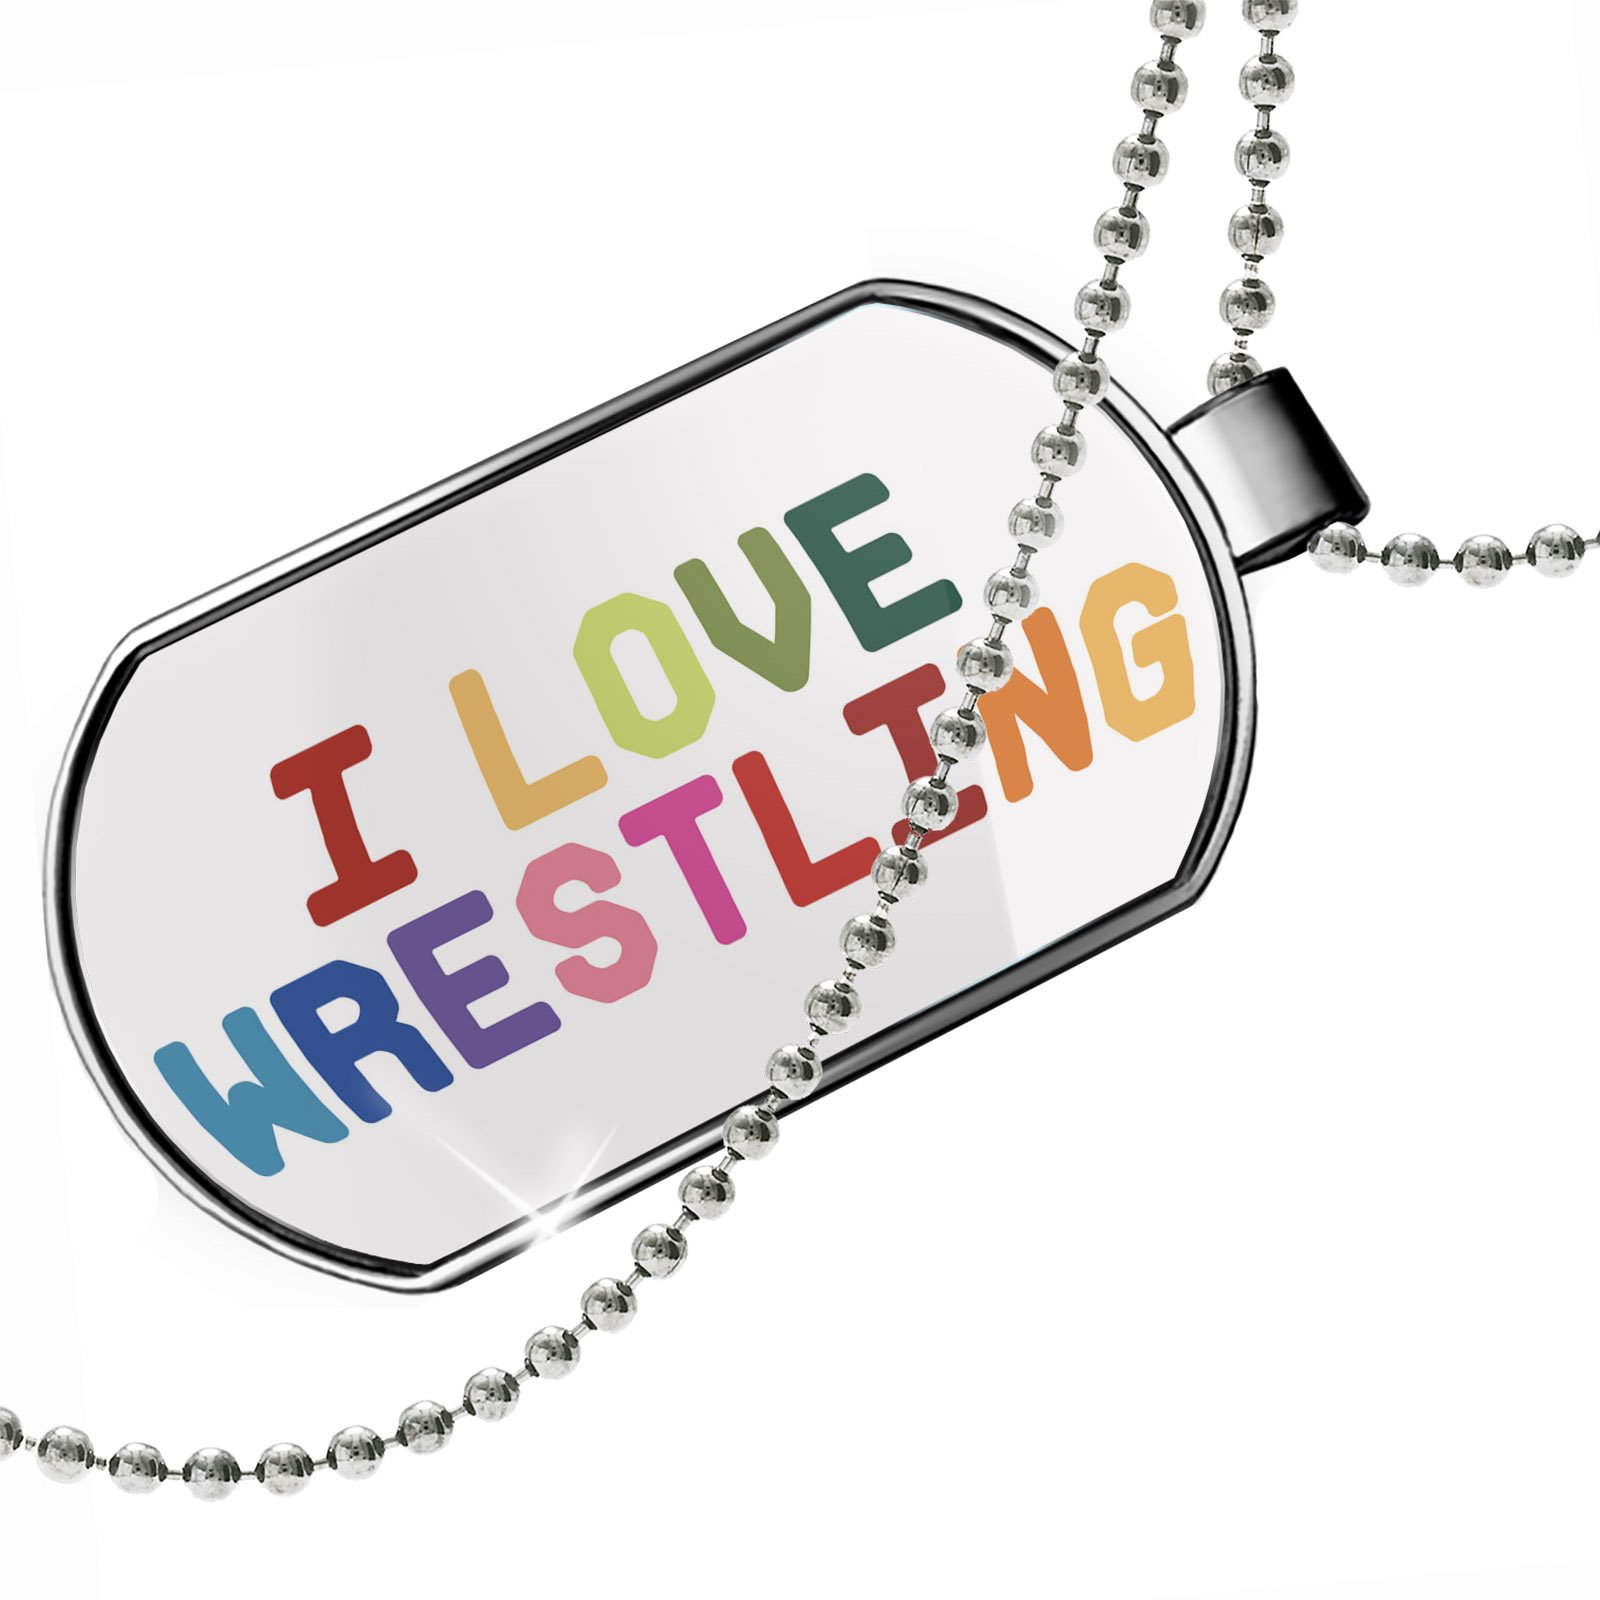 Dogtag I Love Wrestling,Colorful Dog tags necklace - Neonblond